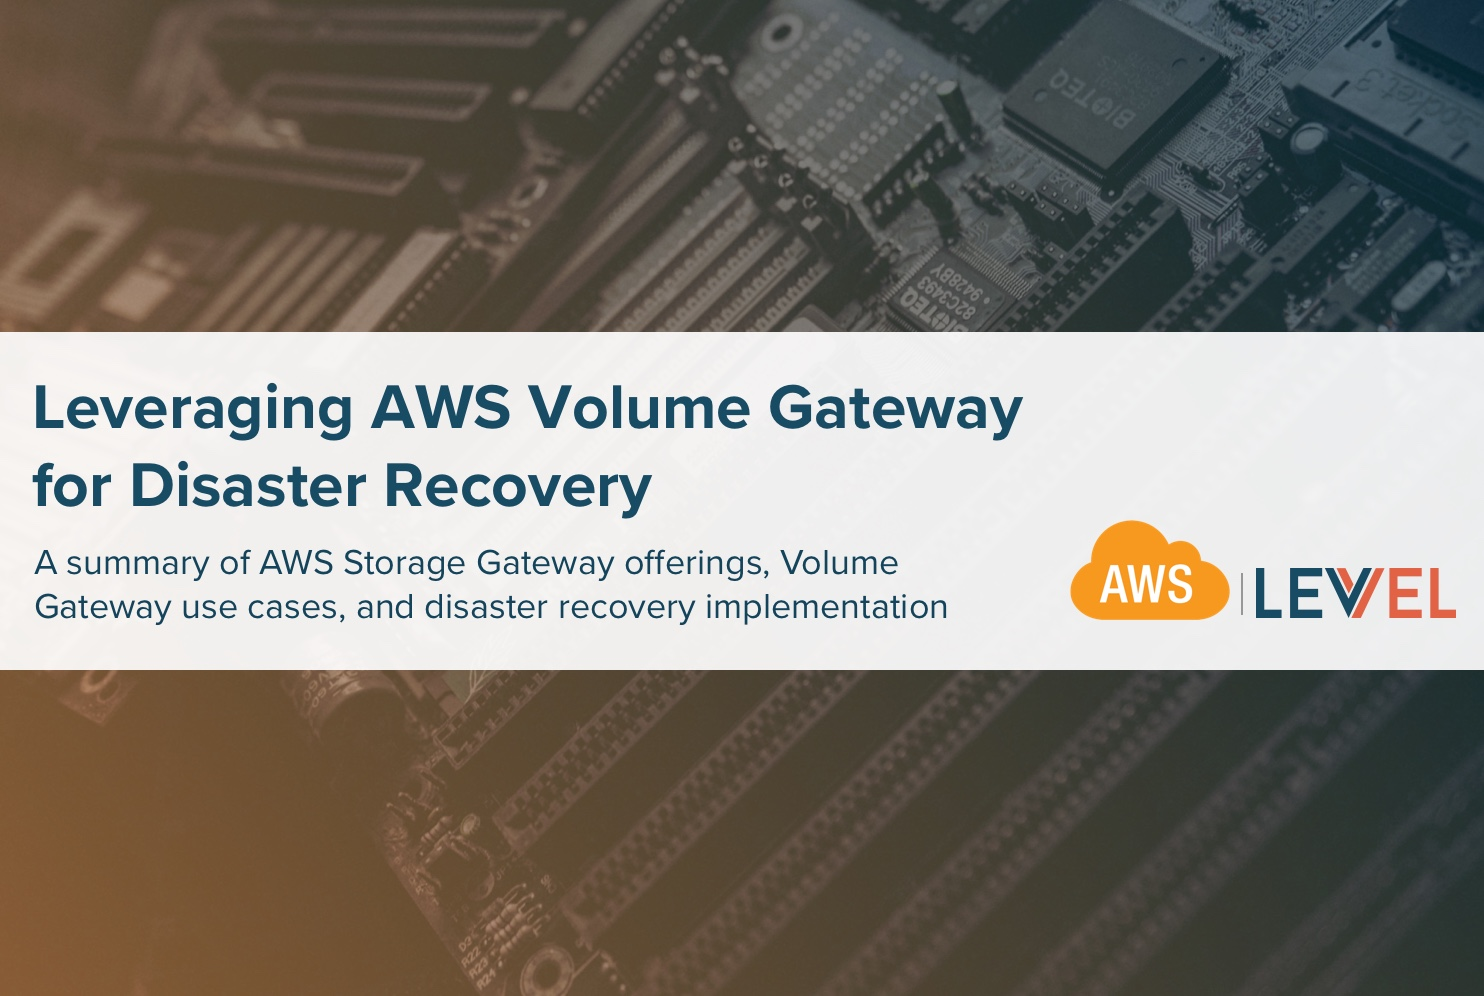 Leveraging AWS Volume Gateway for Disaster Recovery